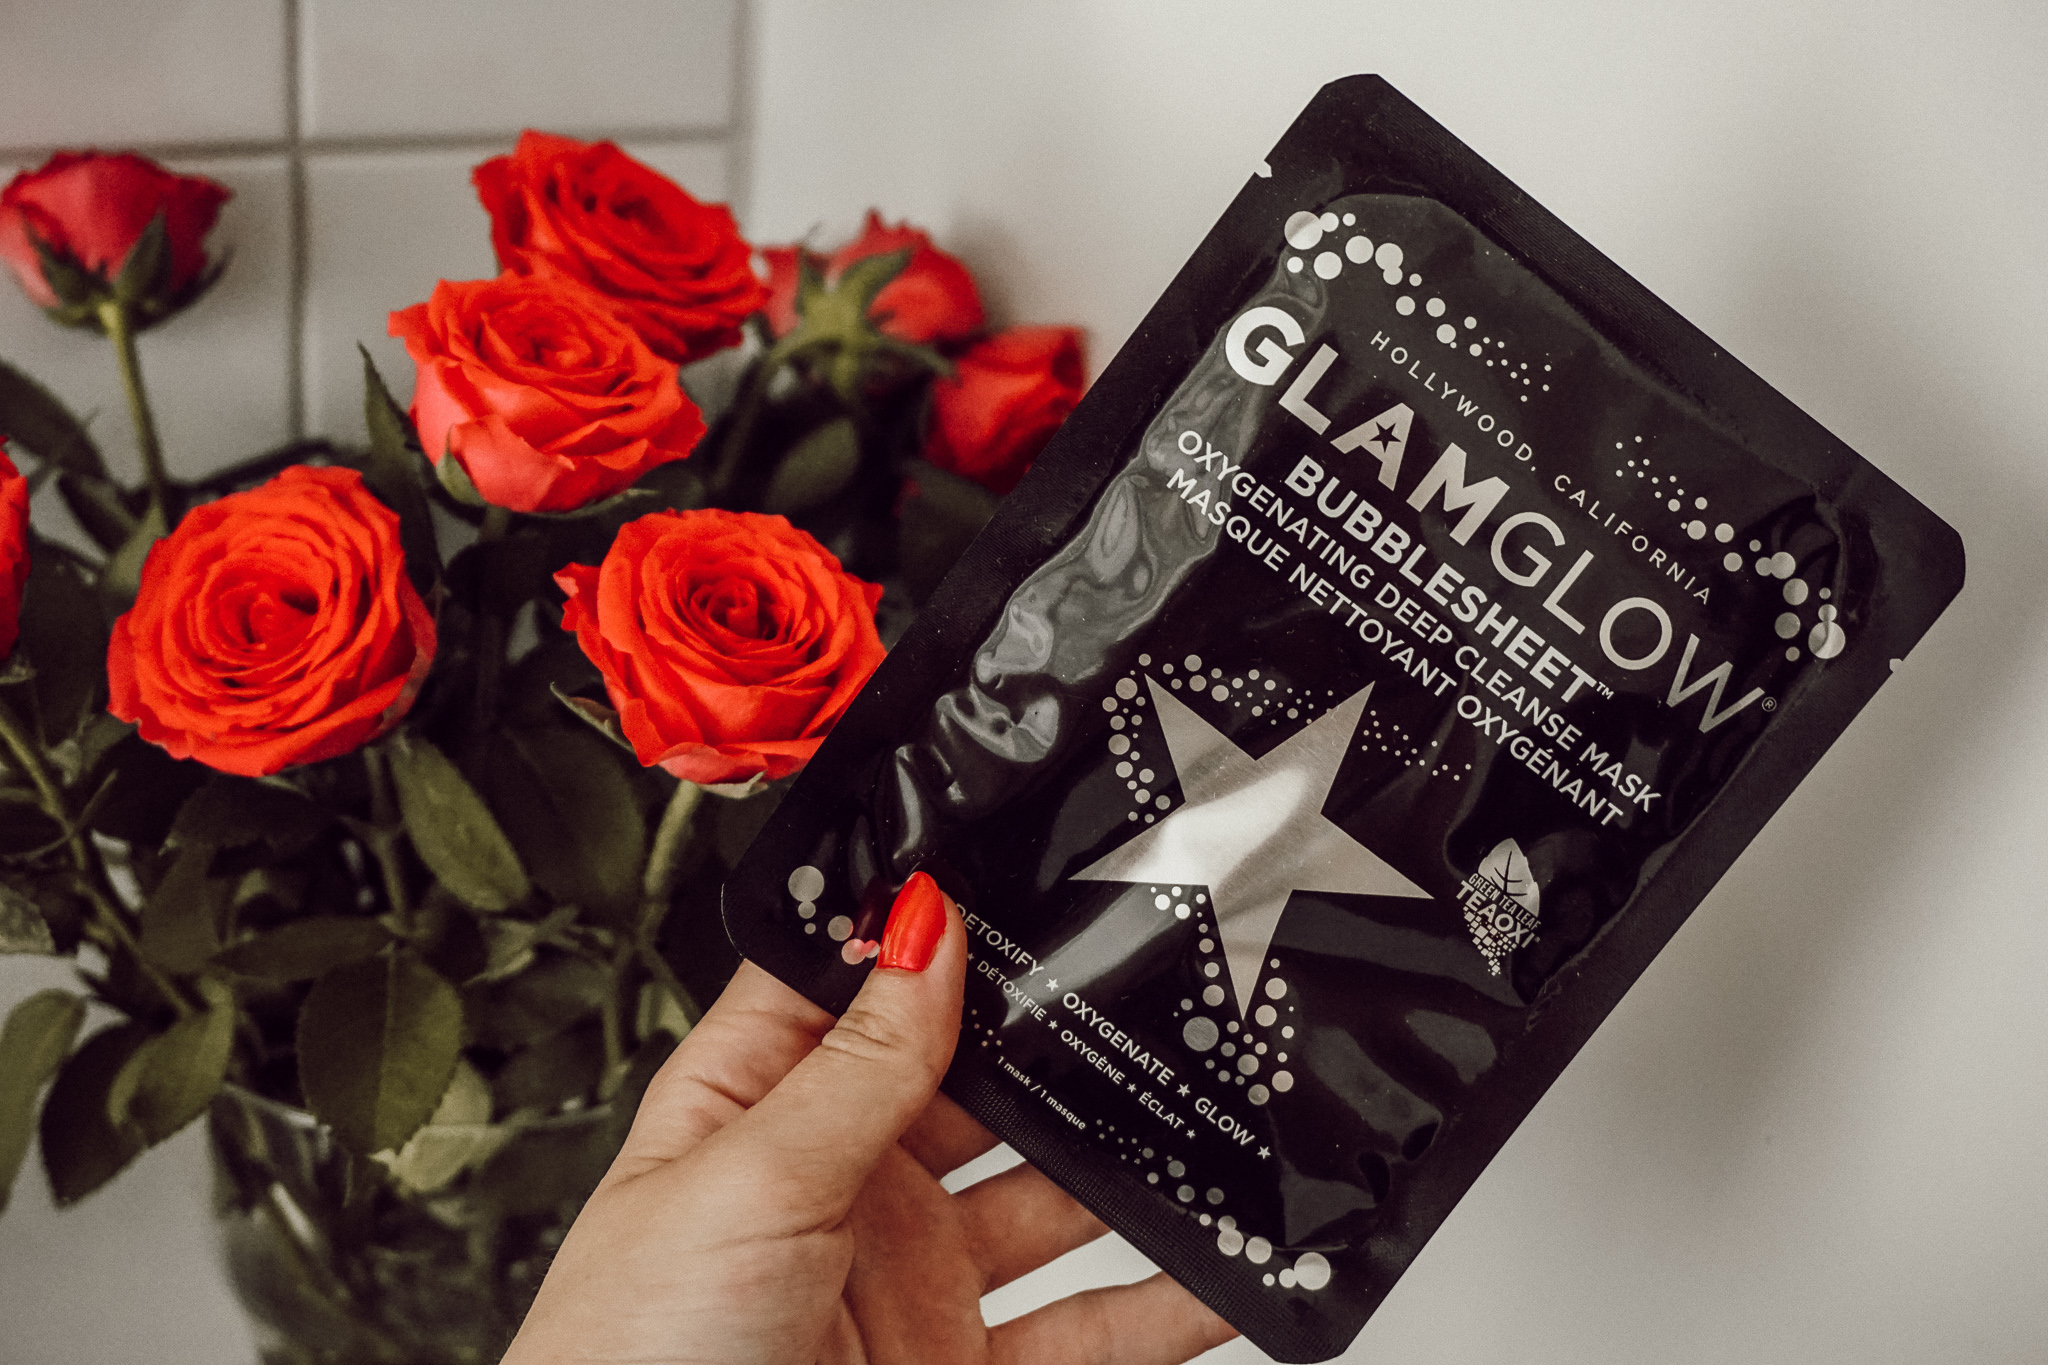 Glamglow Bubble Sheet Mask